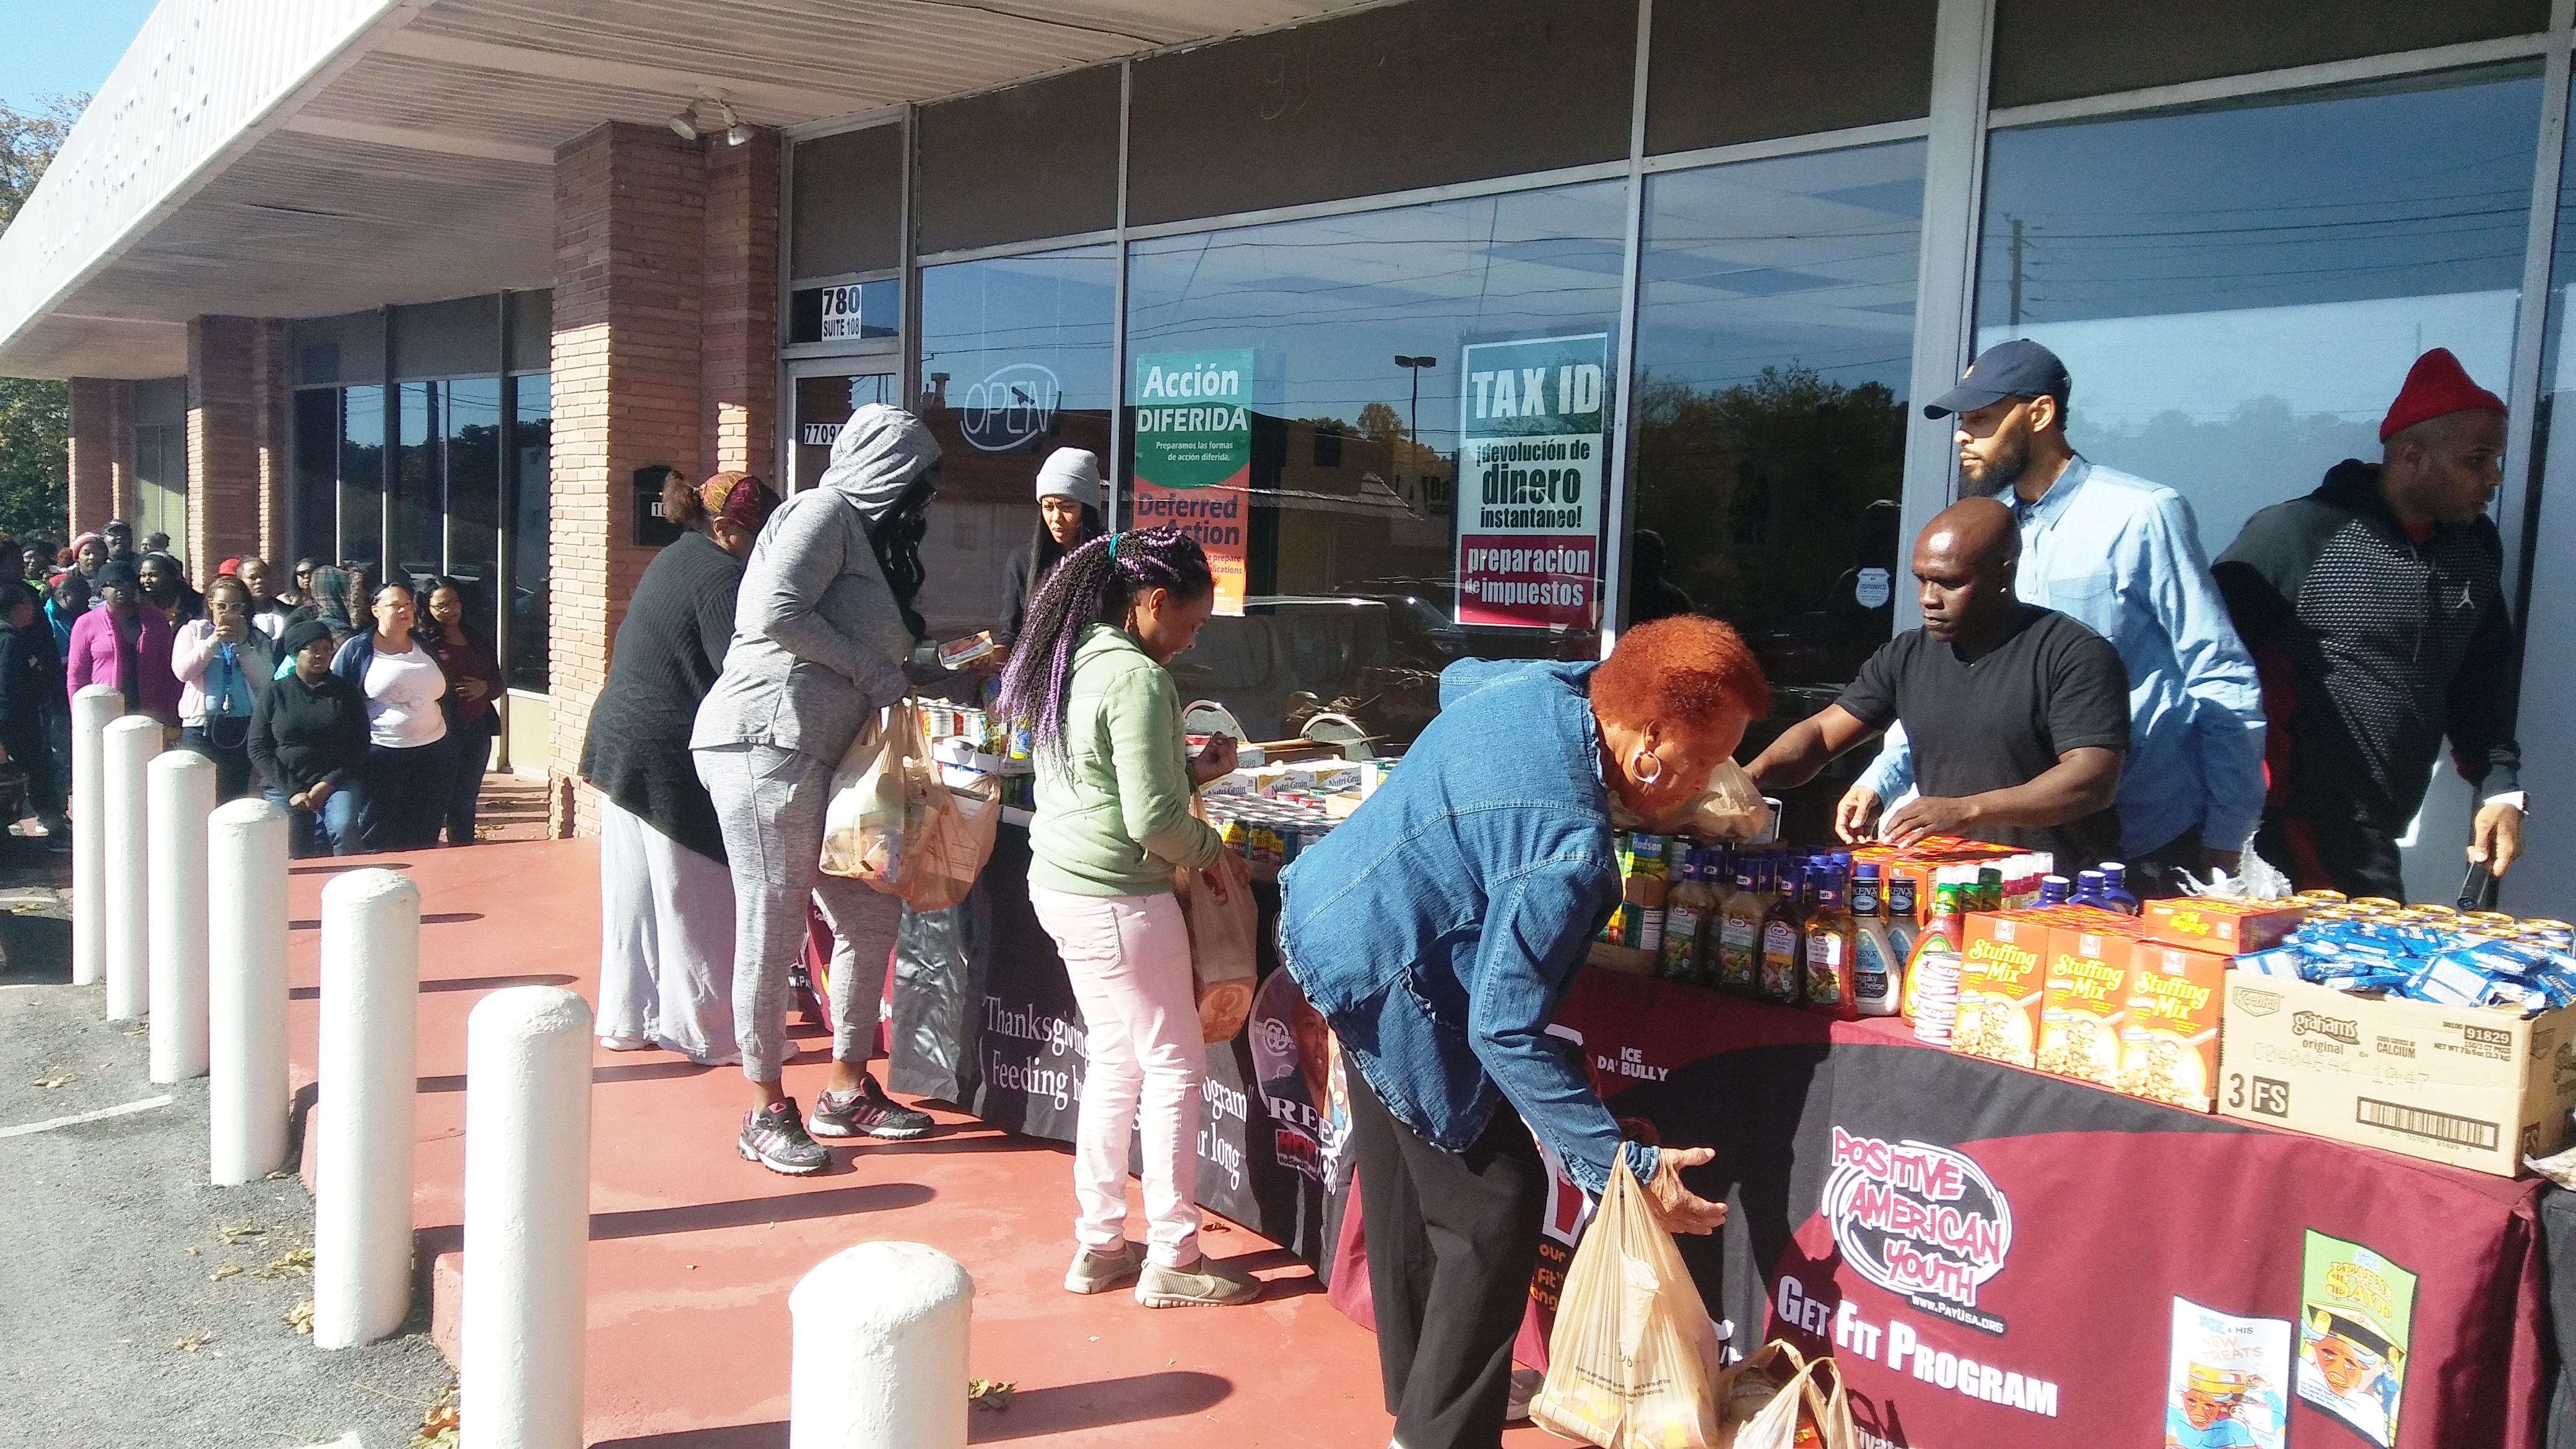 reec-host-grocery-give-away-payusa-11-20-1